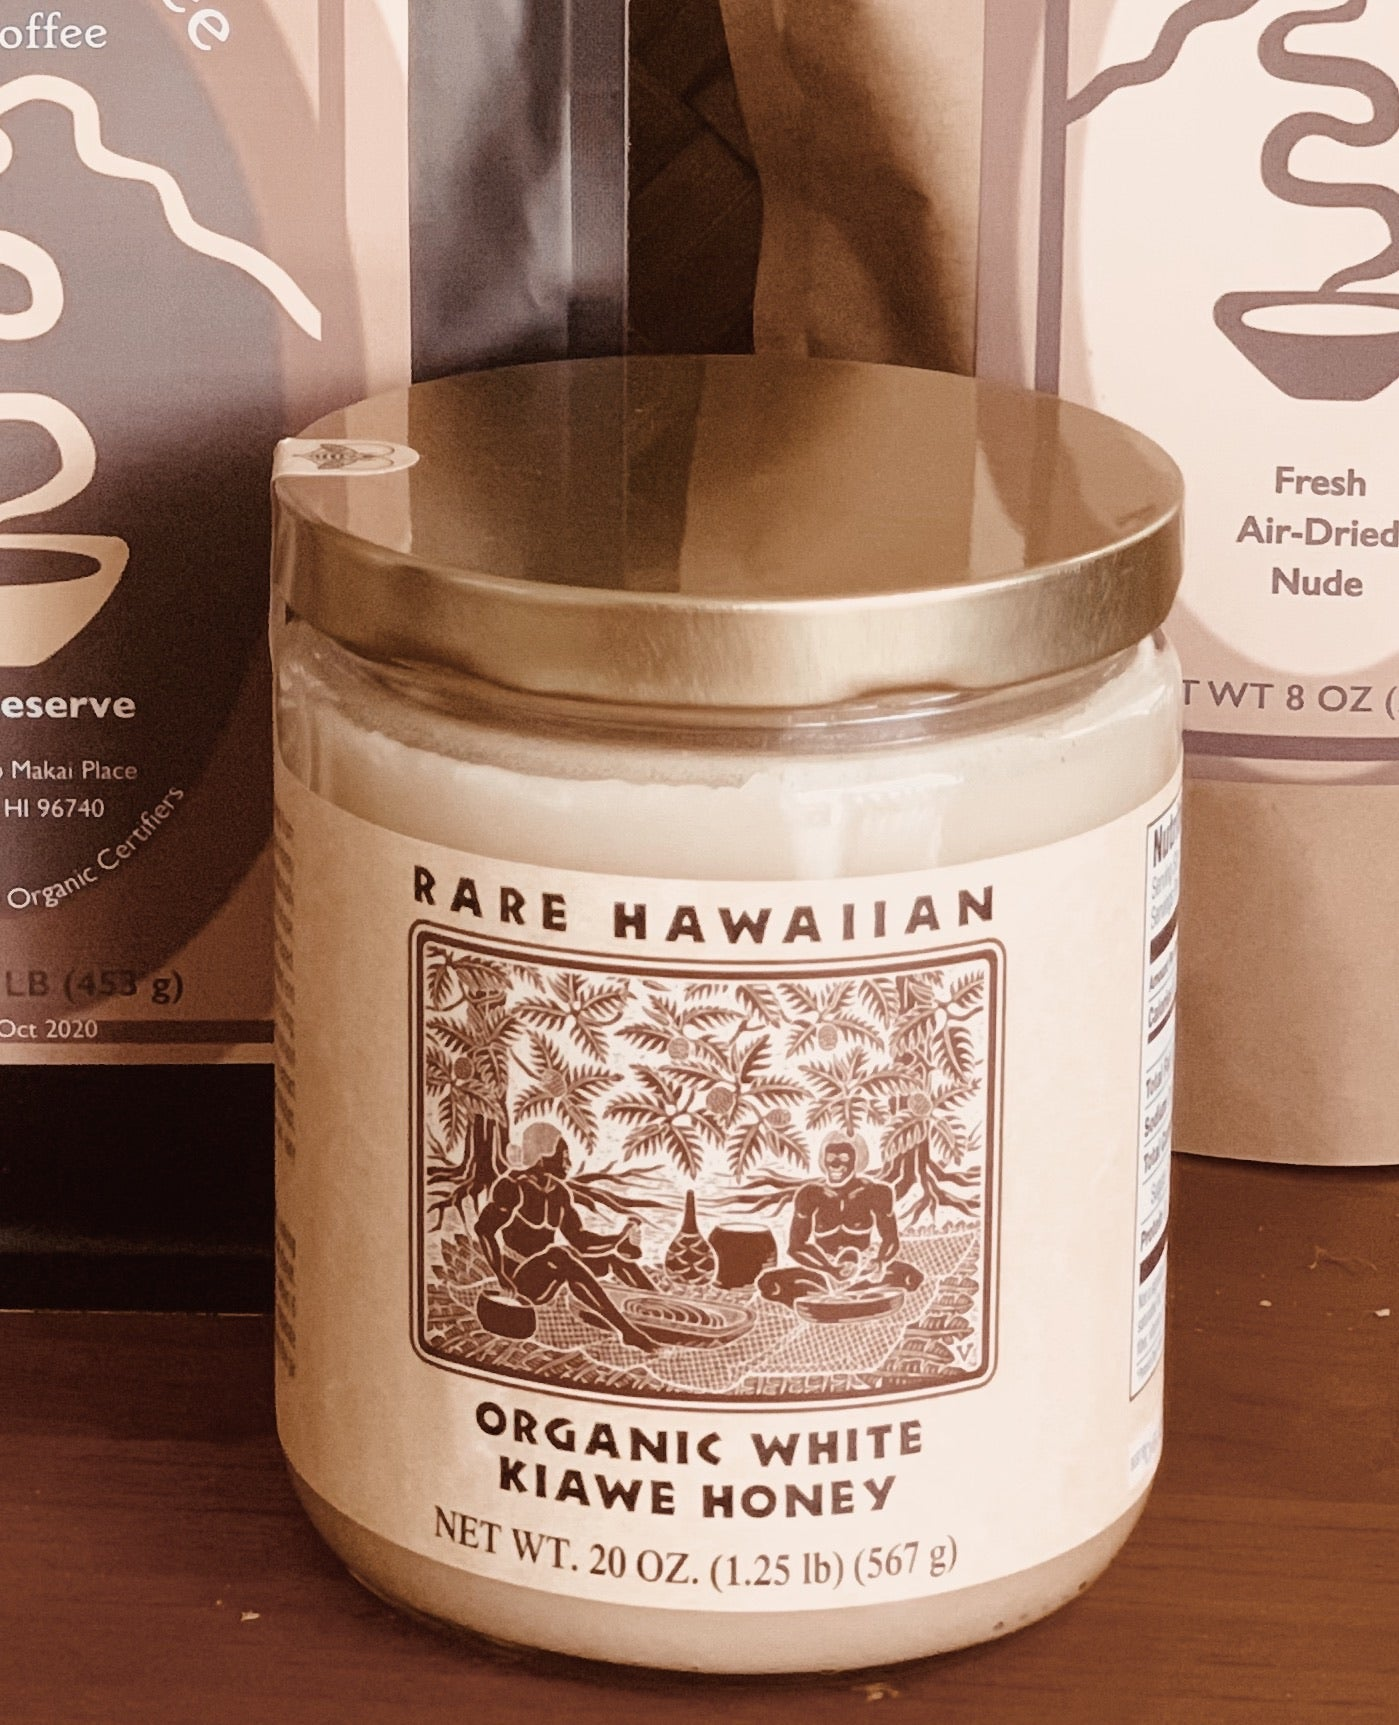 Rare Hawaiian Organic White Kiawe Honey